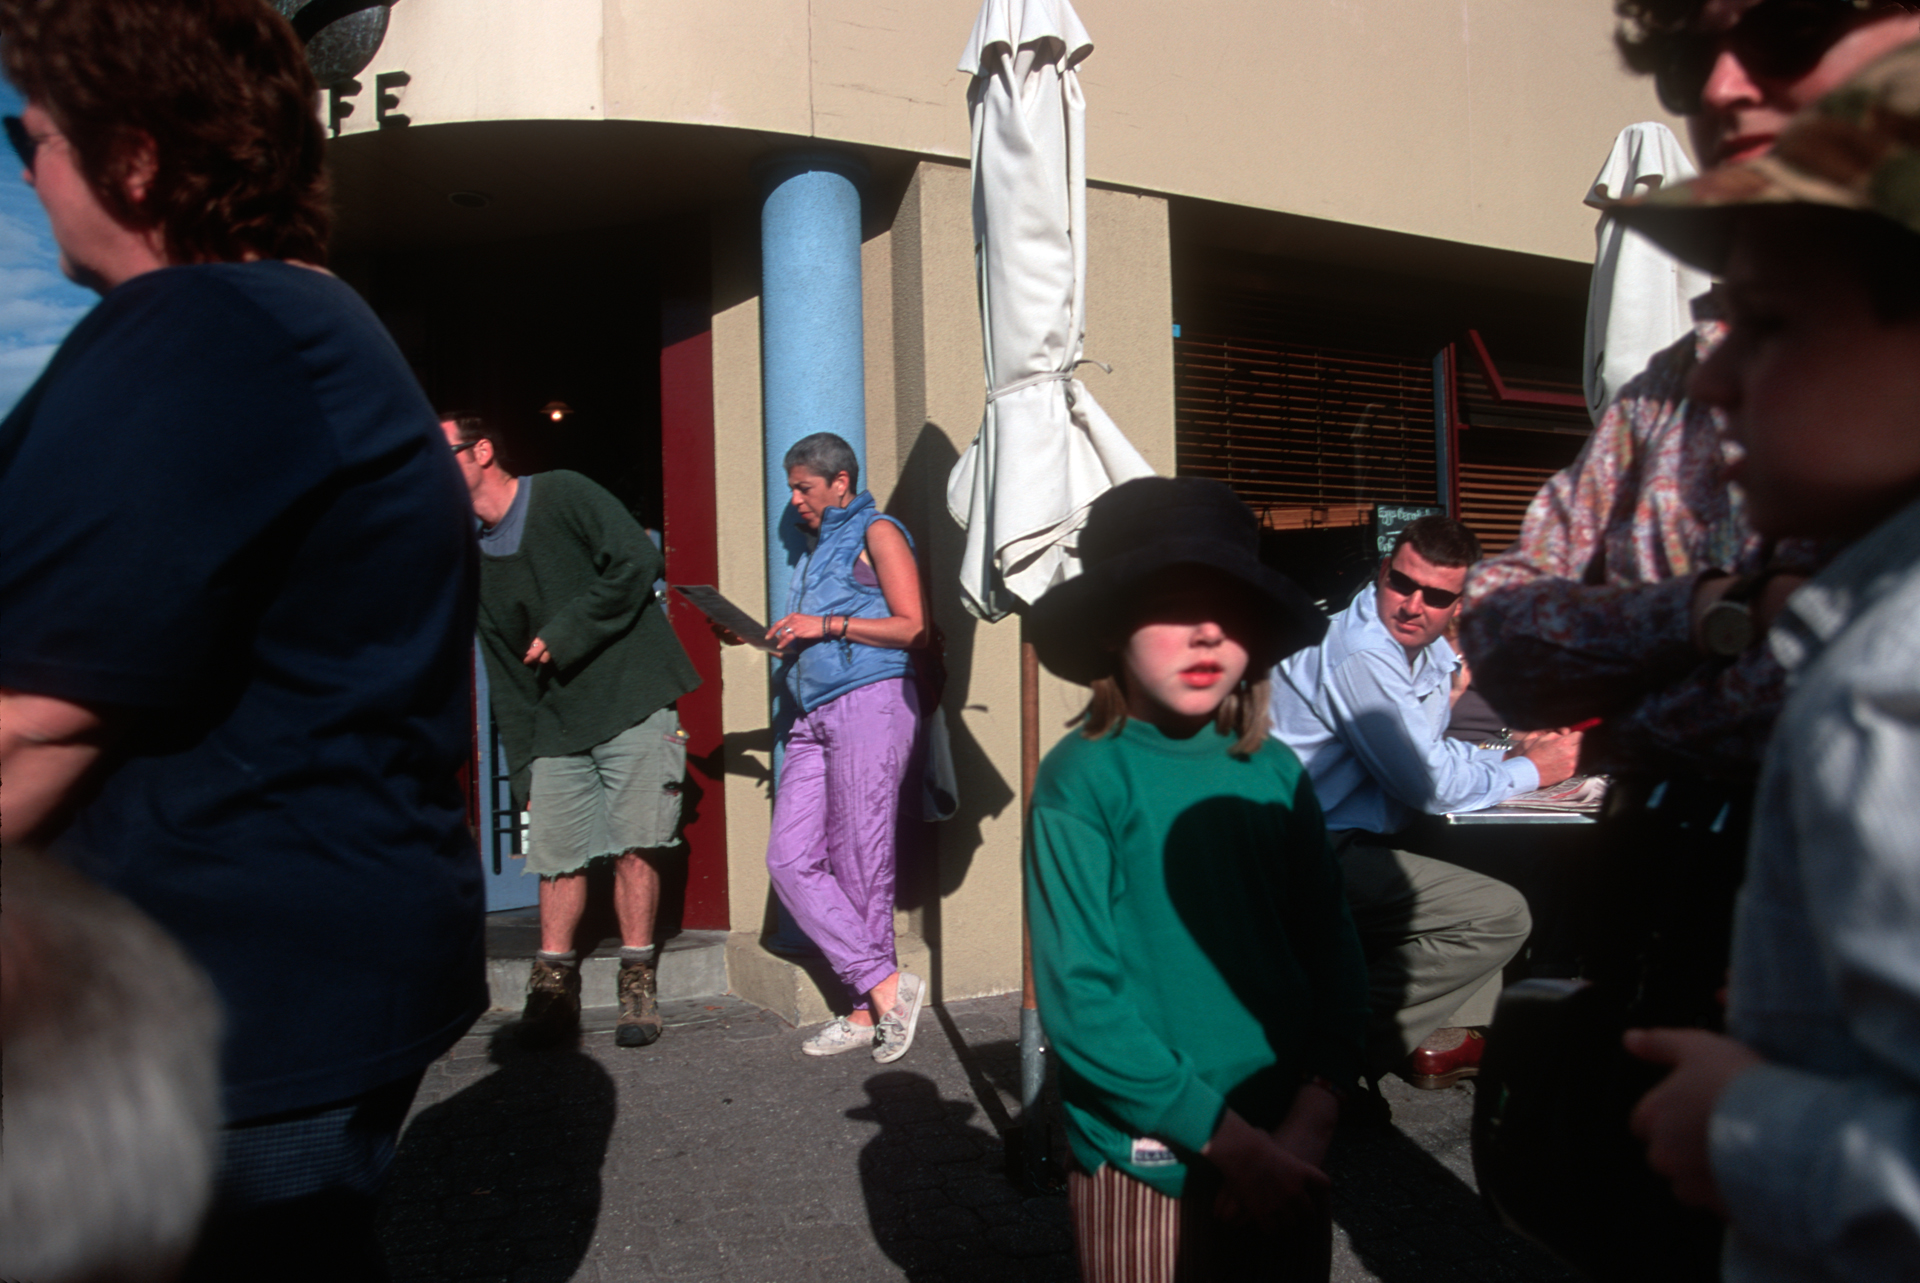 Every Saturday morning a popular open air, arts and crafts market is held at Salamanca place by the harbor in Hobart.  Hobart